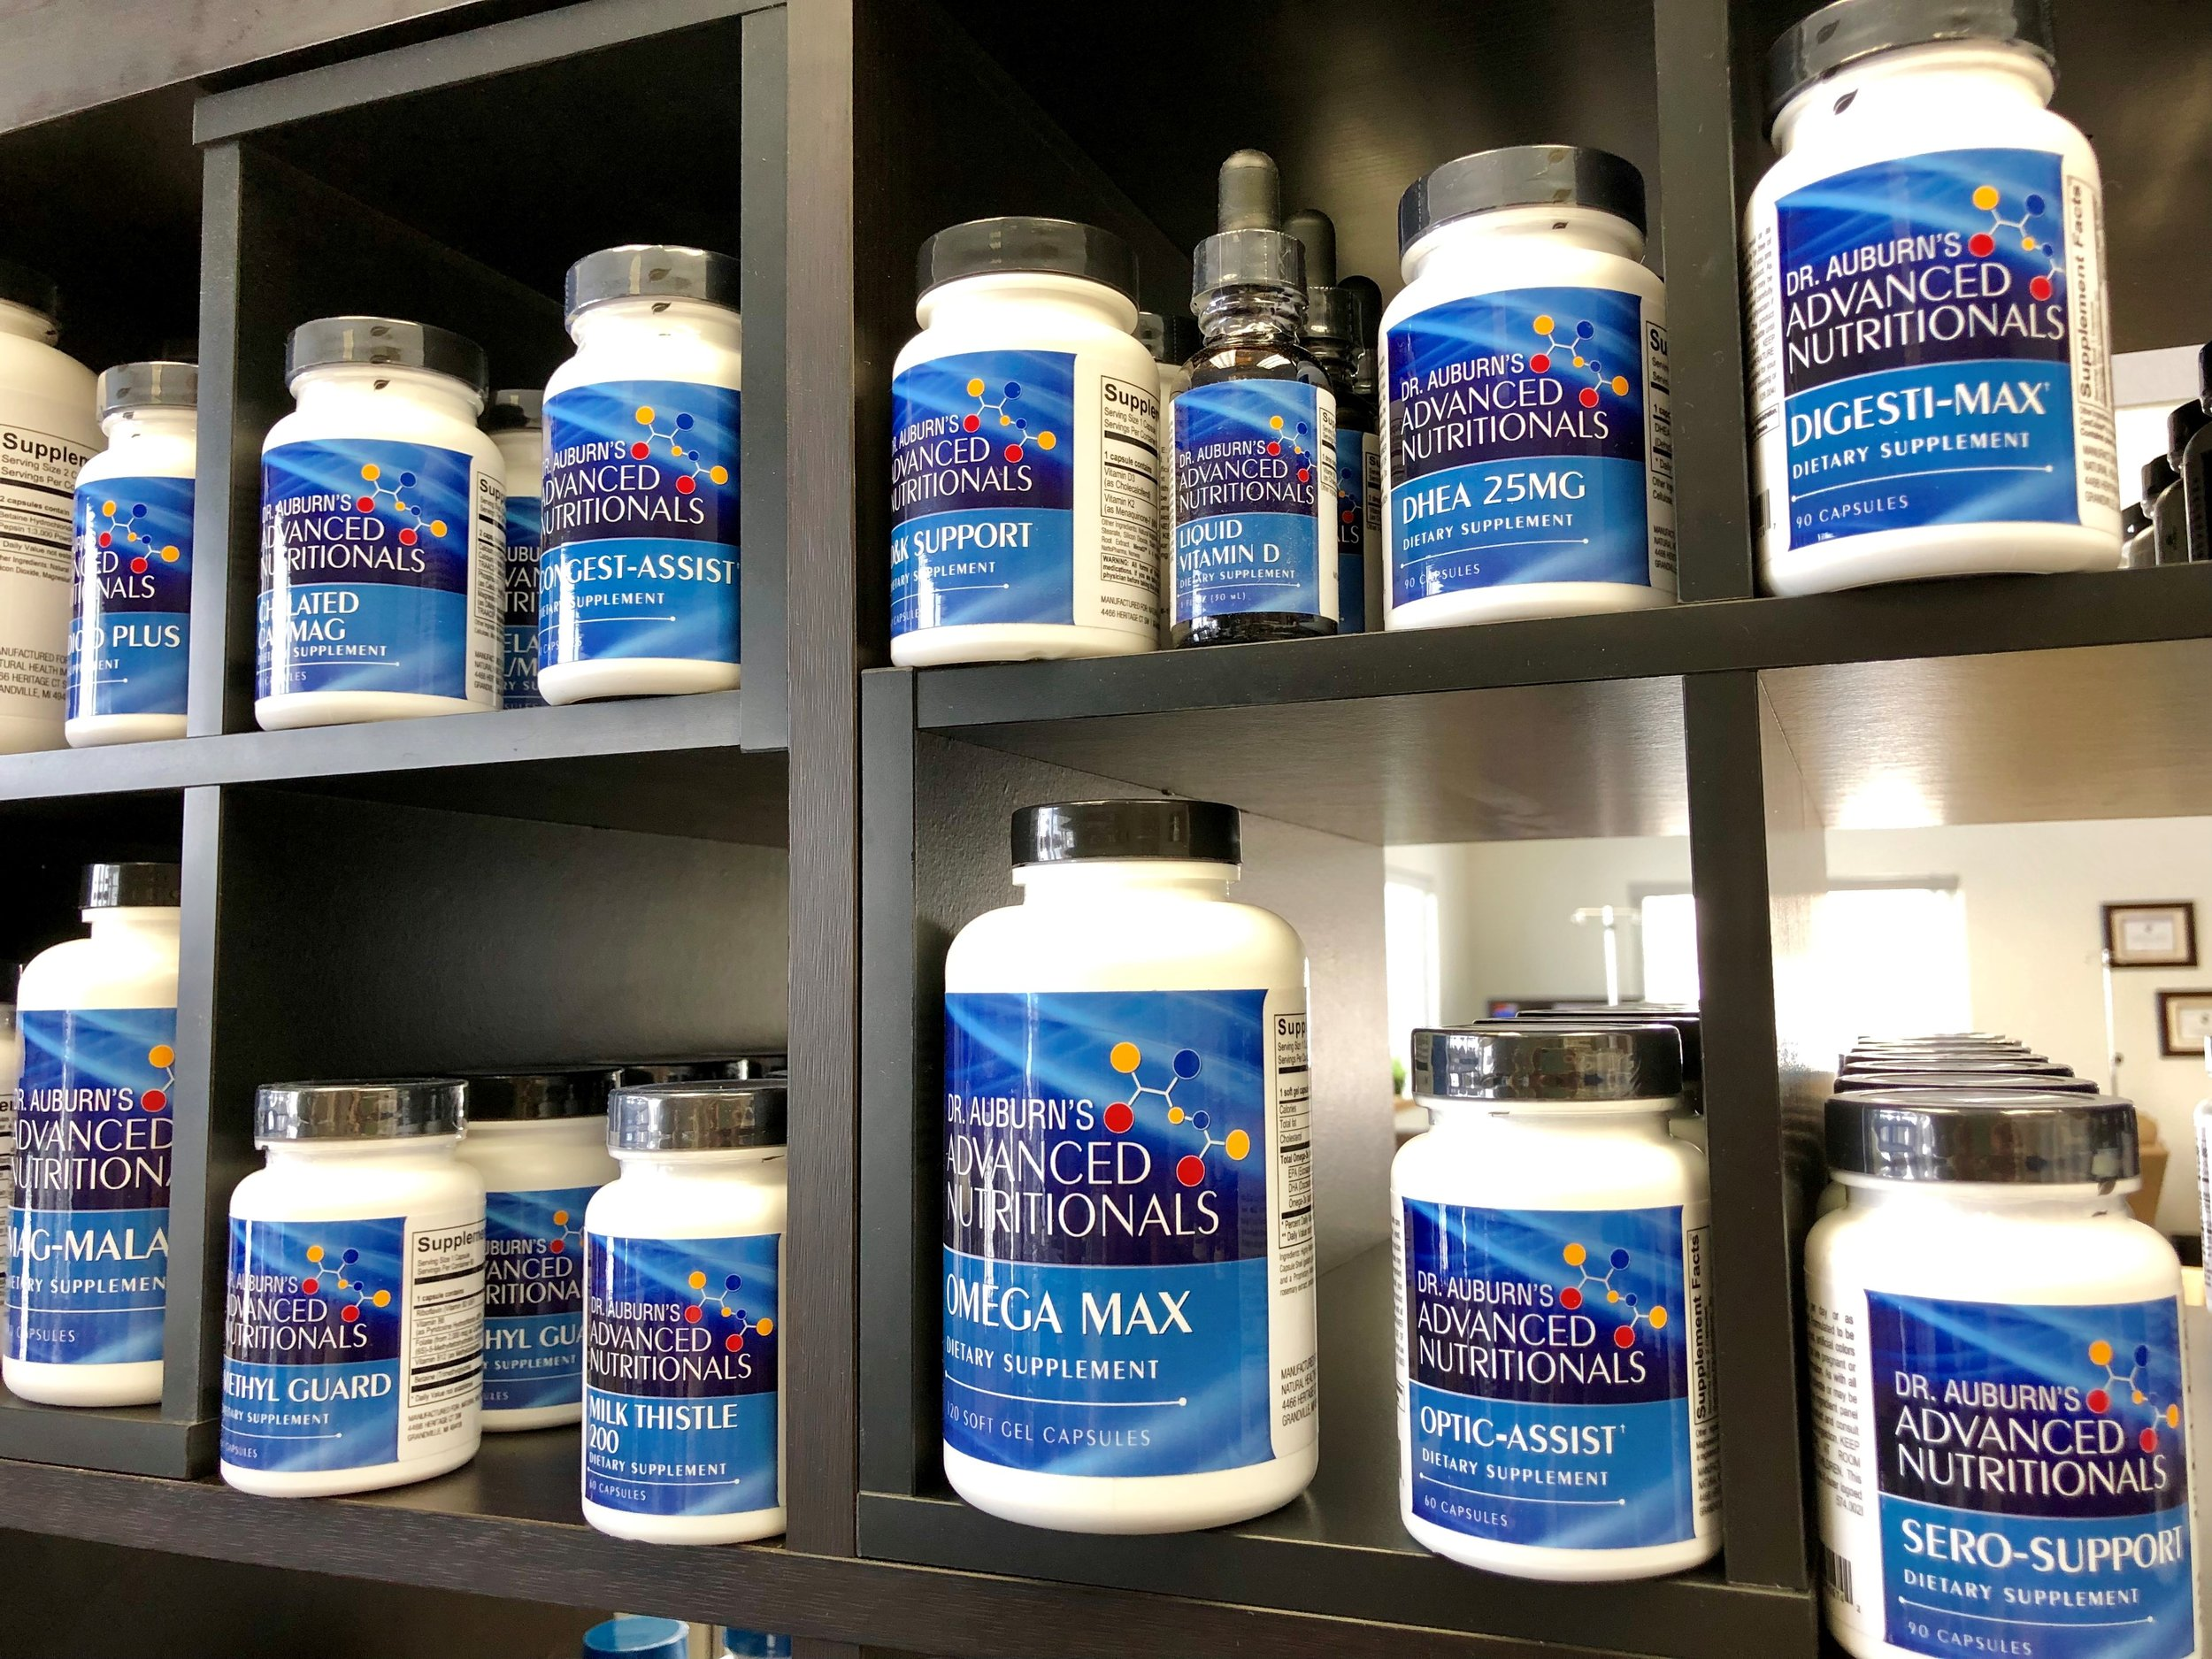 Dr. auburn's advanced Nutritionals launched in-store on March 1!